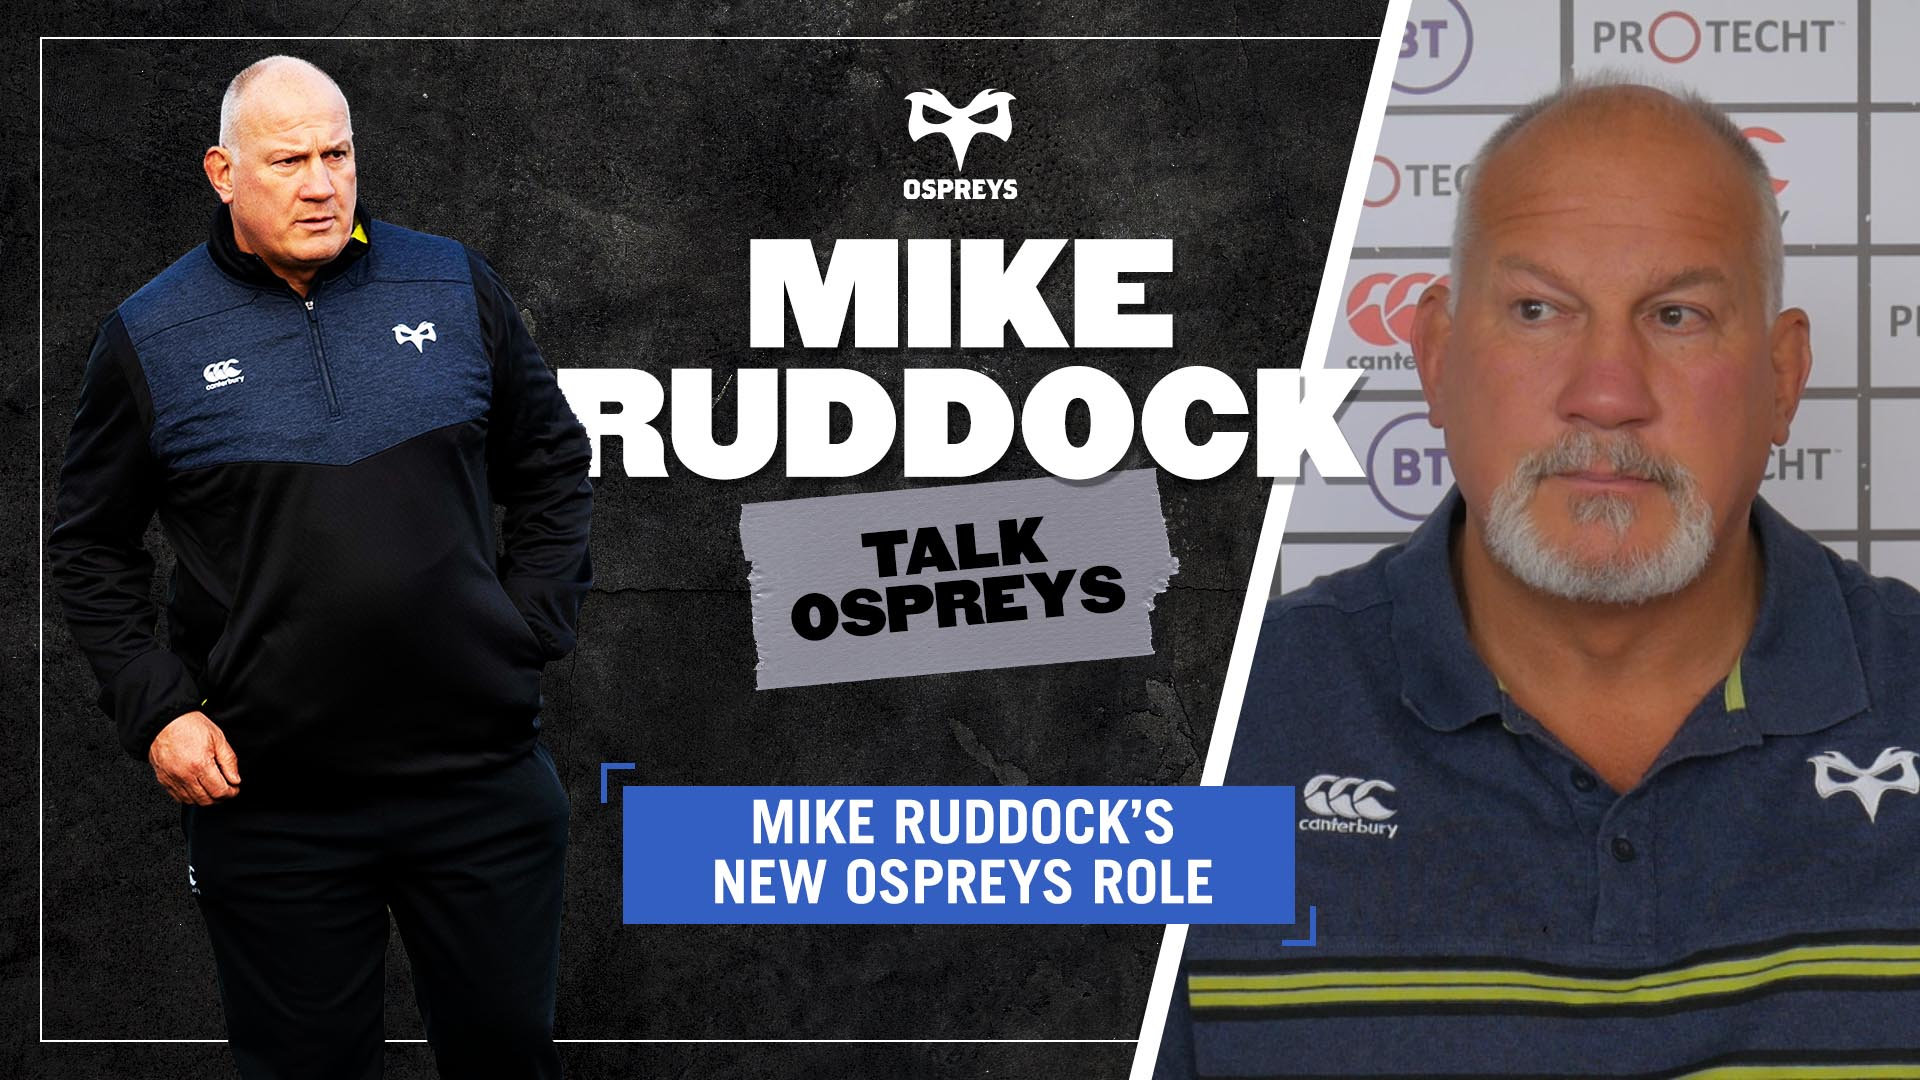 TALK OSPREYS Ruddock New Role